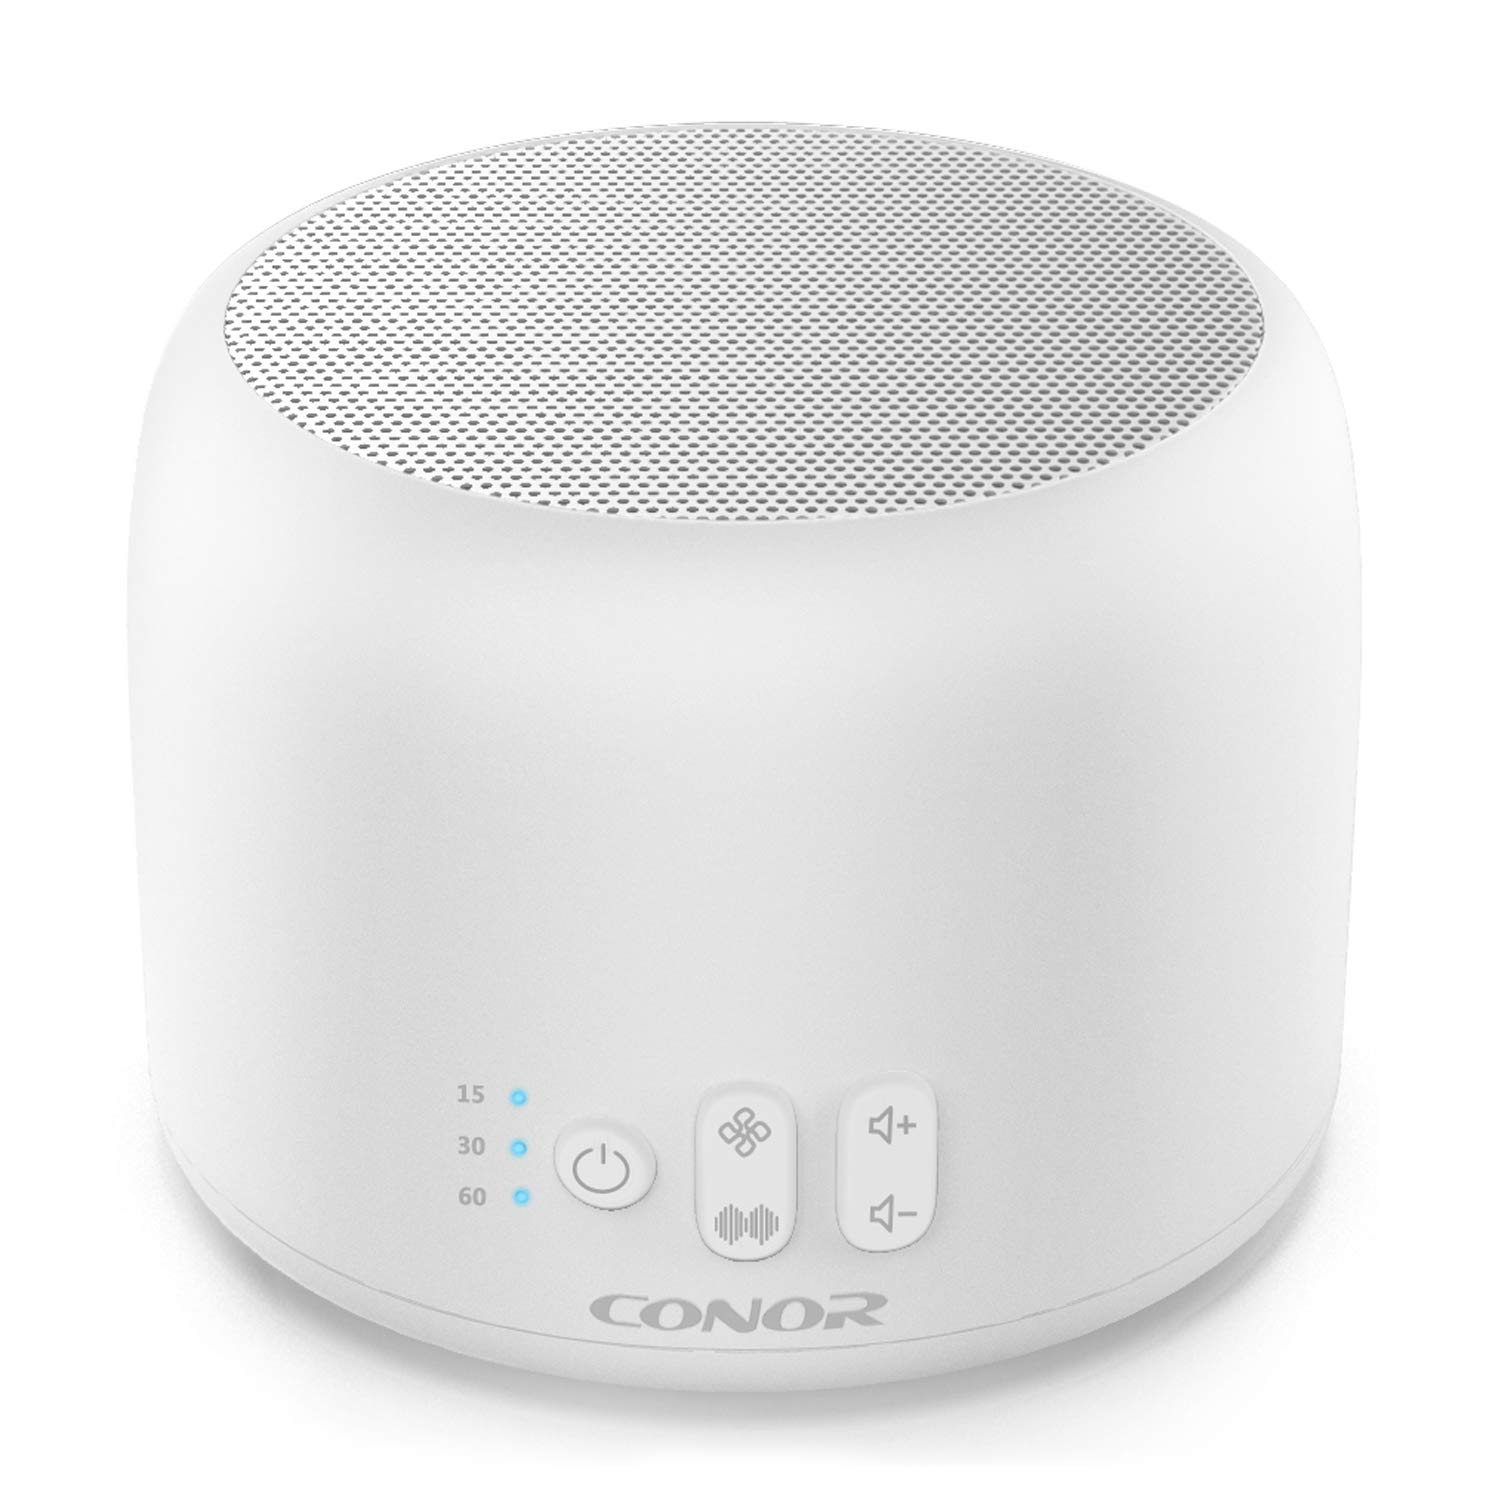 White Noise Machine, Conor High Fidelity Sound Machine for Sleeping, Baby, Office Privacy - with 24 Unique Fan & White Noise Sounds, Sleep Timer, 2 USB Charge Port